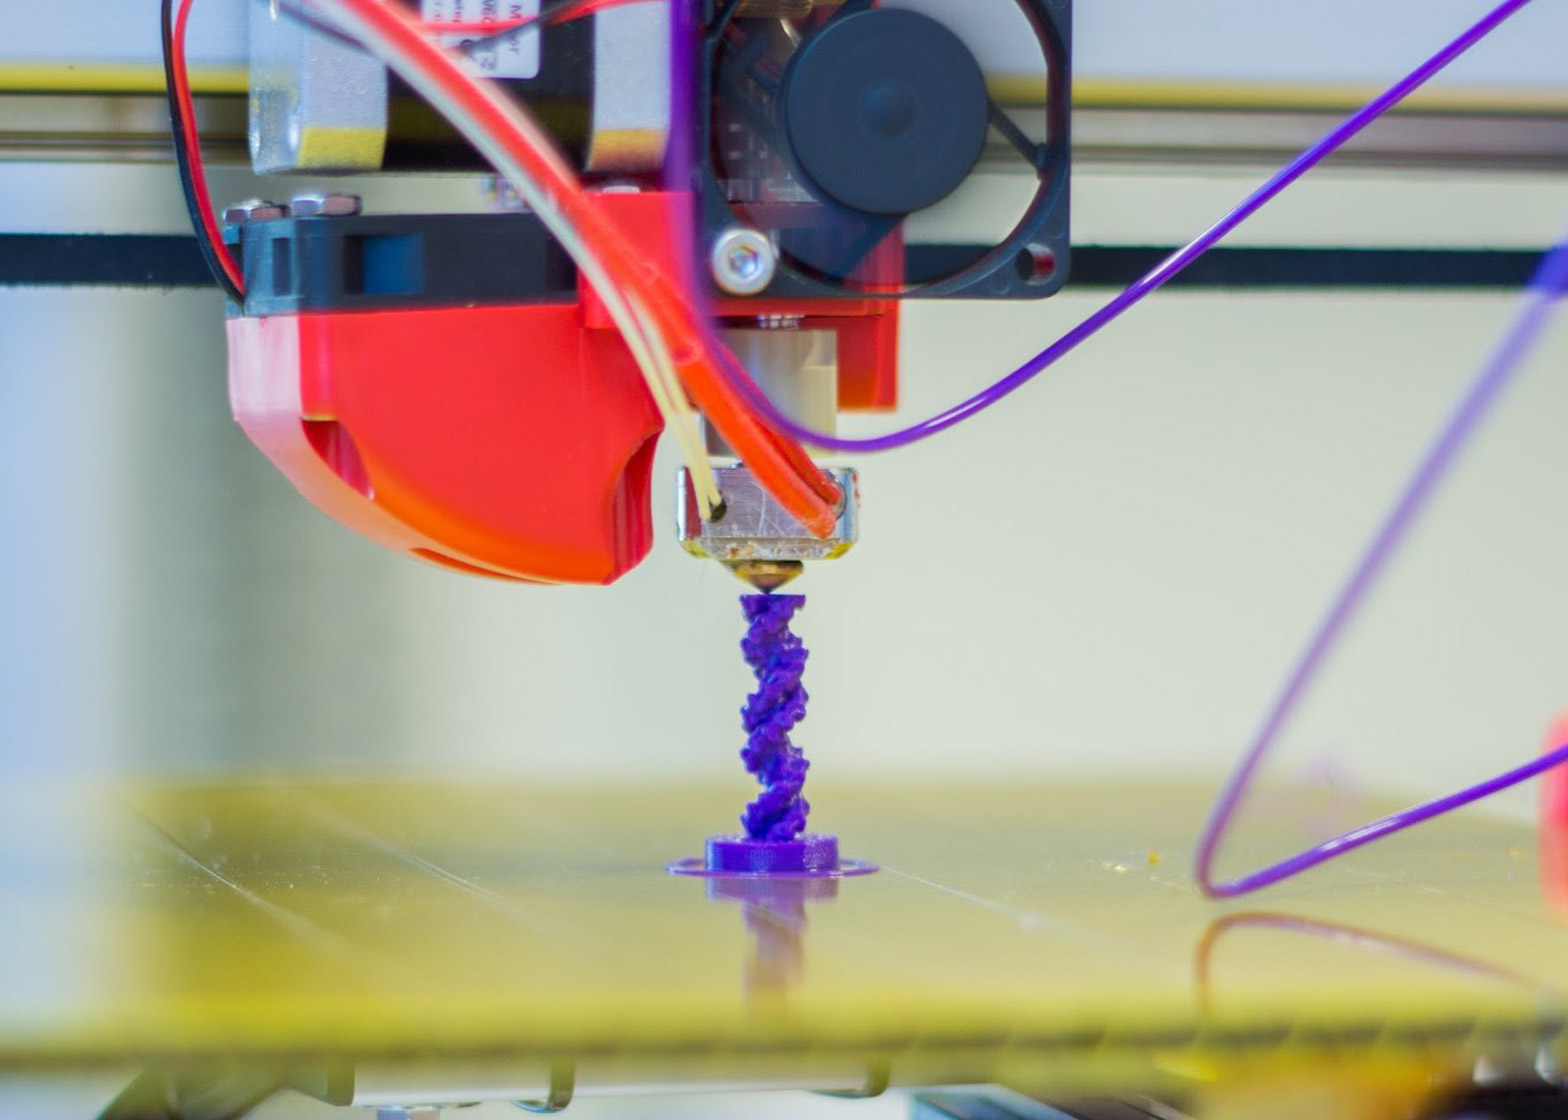 3d-printing-causes-harmful-health-effects-illinois-institute-of-technology_dezeen_ban.jpg